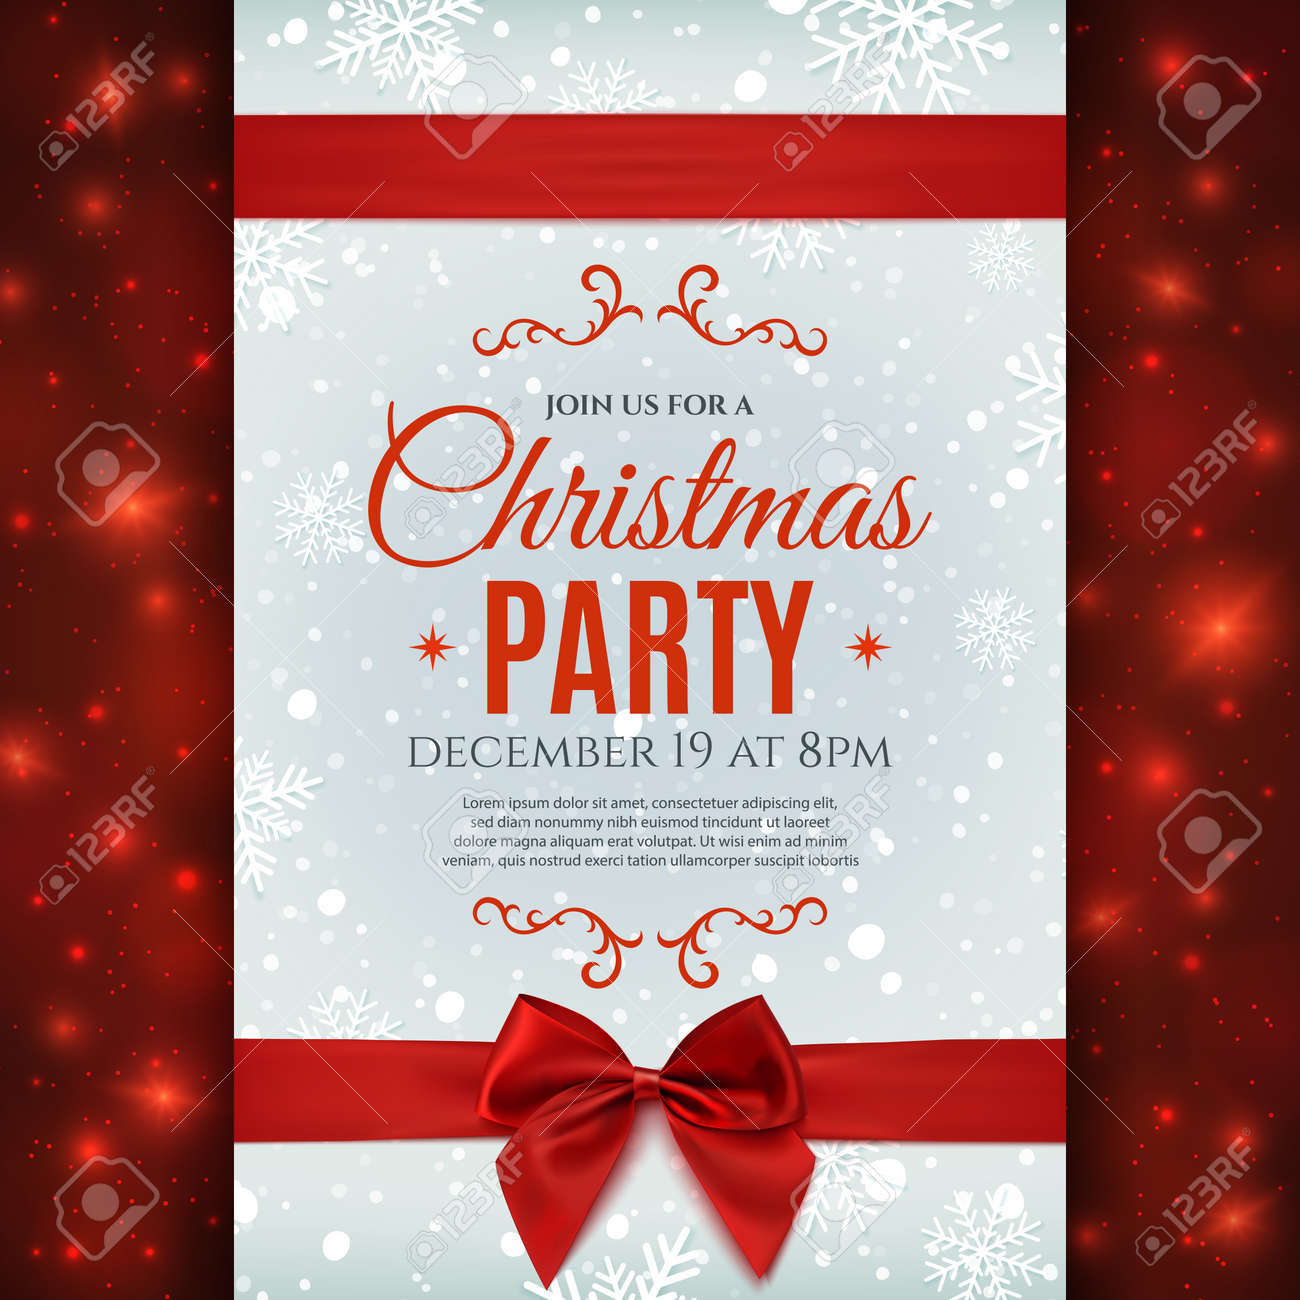 christmas party poster template snow and snowflakes christmas party poster template snow and snowflakes christmas background red ribbon and bow